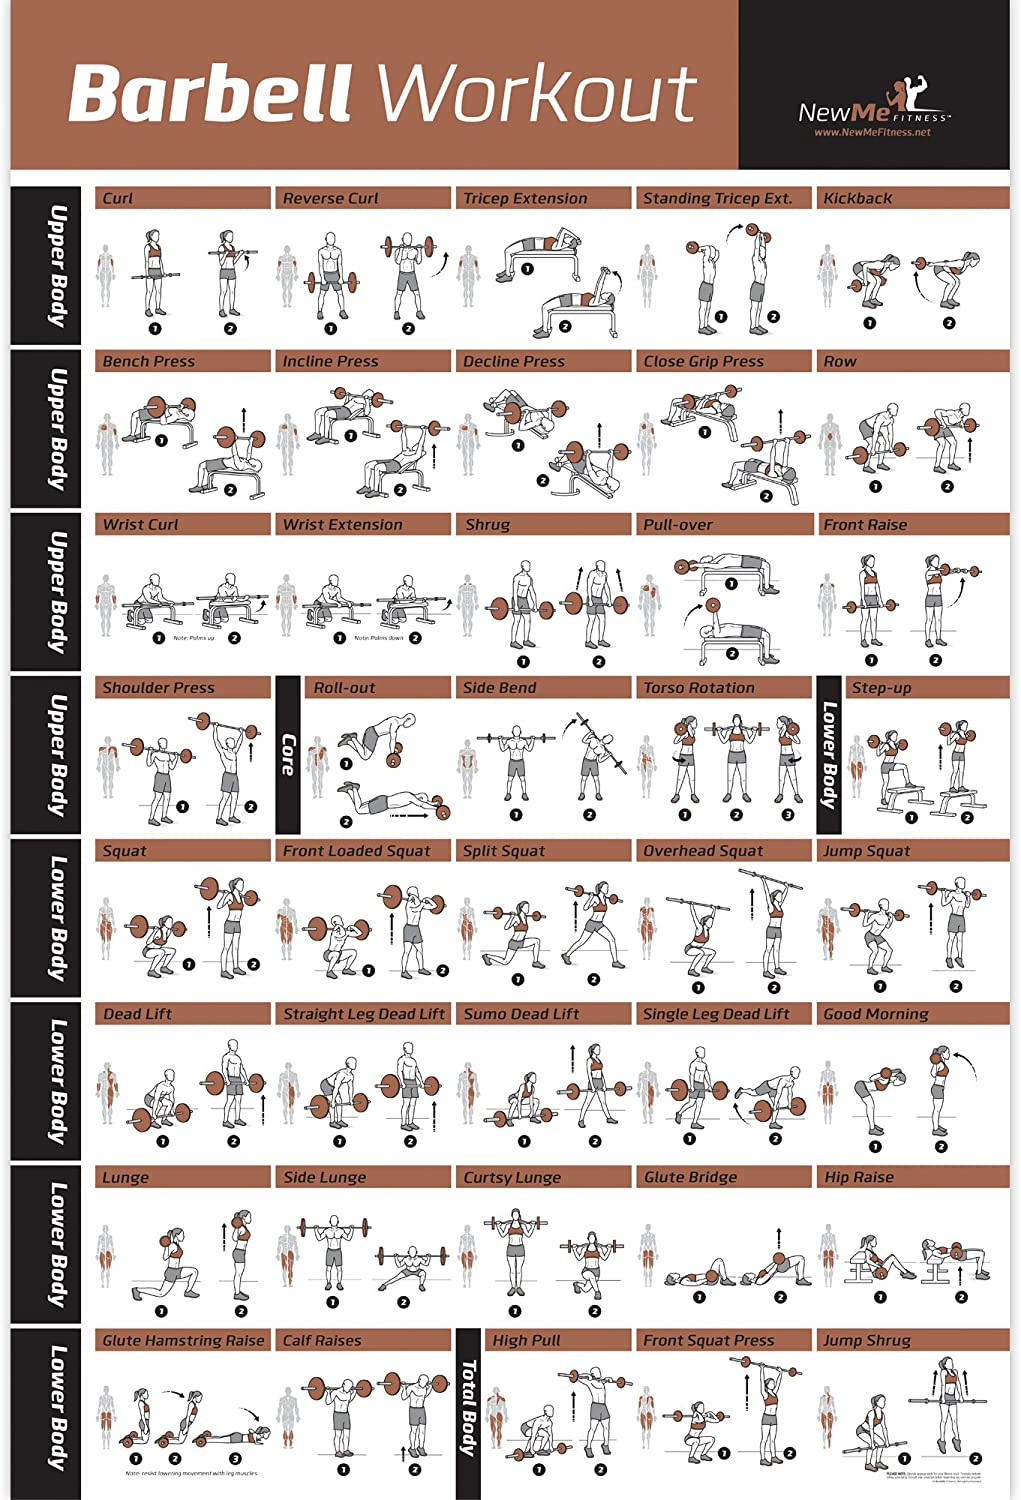 NewMe Fitness Barbell Workout Exercise Poster Laminated - Home Gym Weight Lifting Chart - Build Muscle Tone & Tighten - Strength Training Routine - Body Building Guide w/Free Weights & Resistance